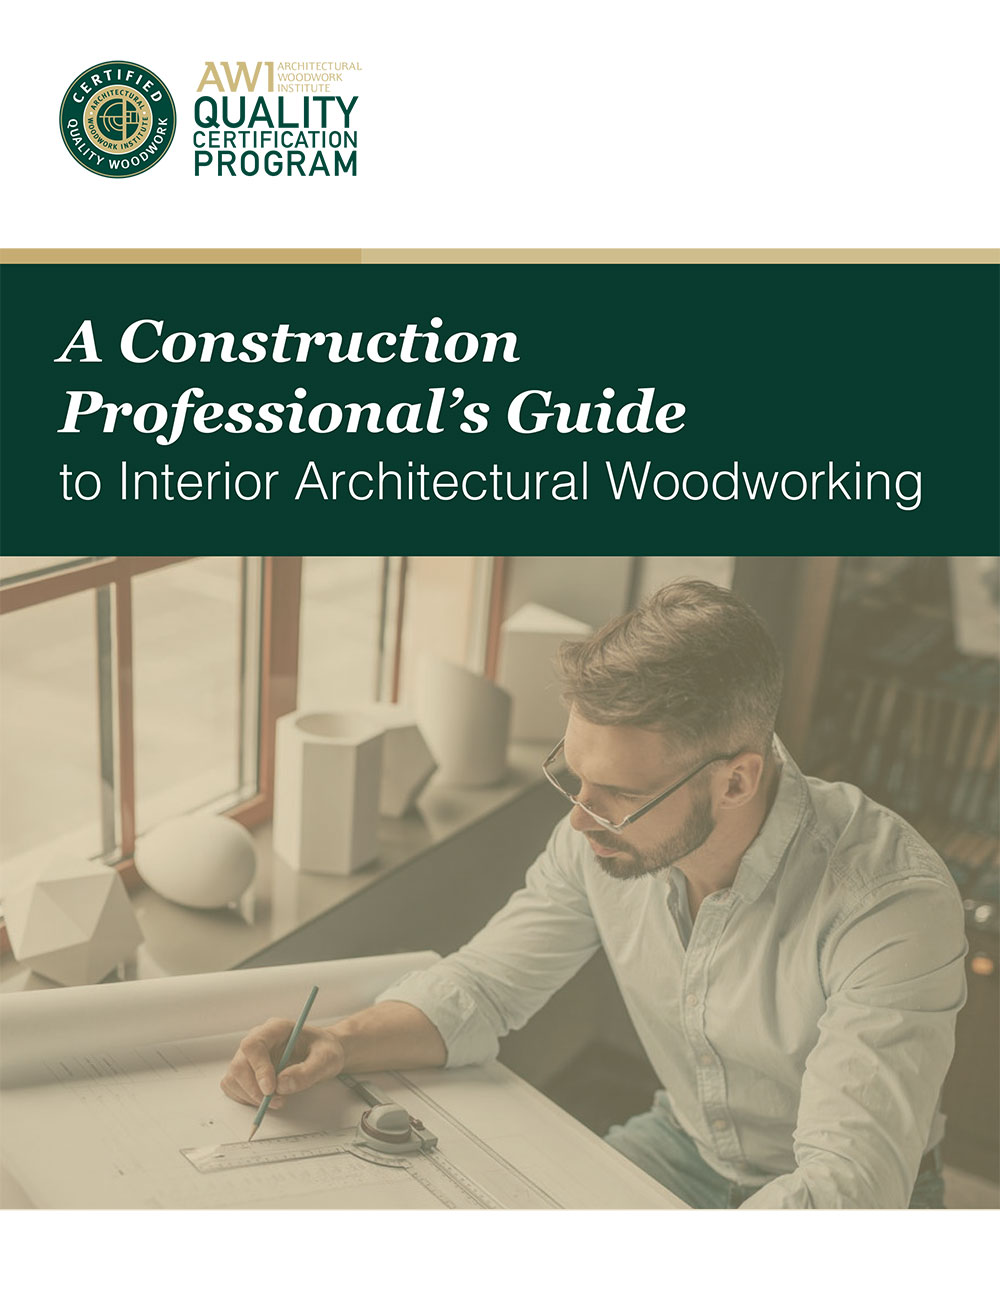 A Construction Professional's Guide to Interior Architectural Woodworking